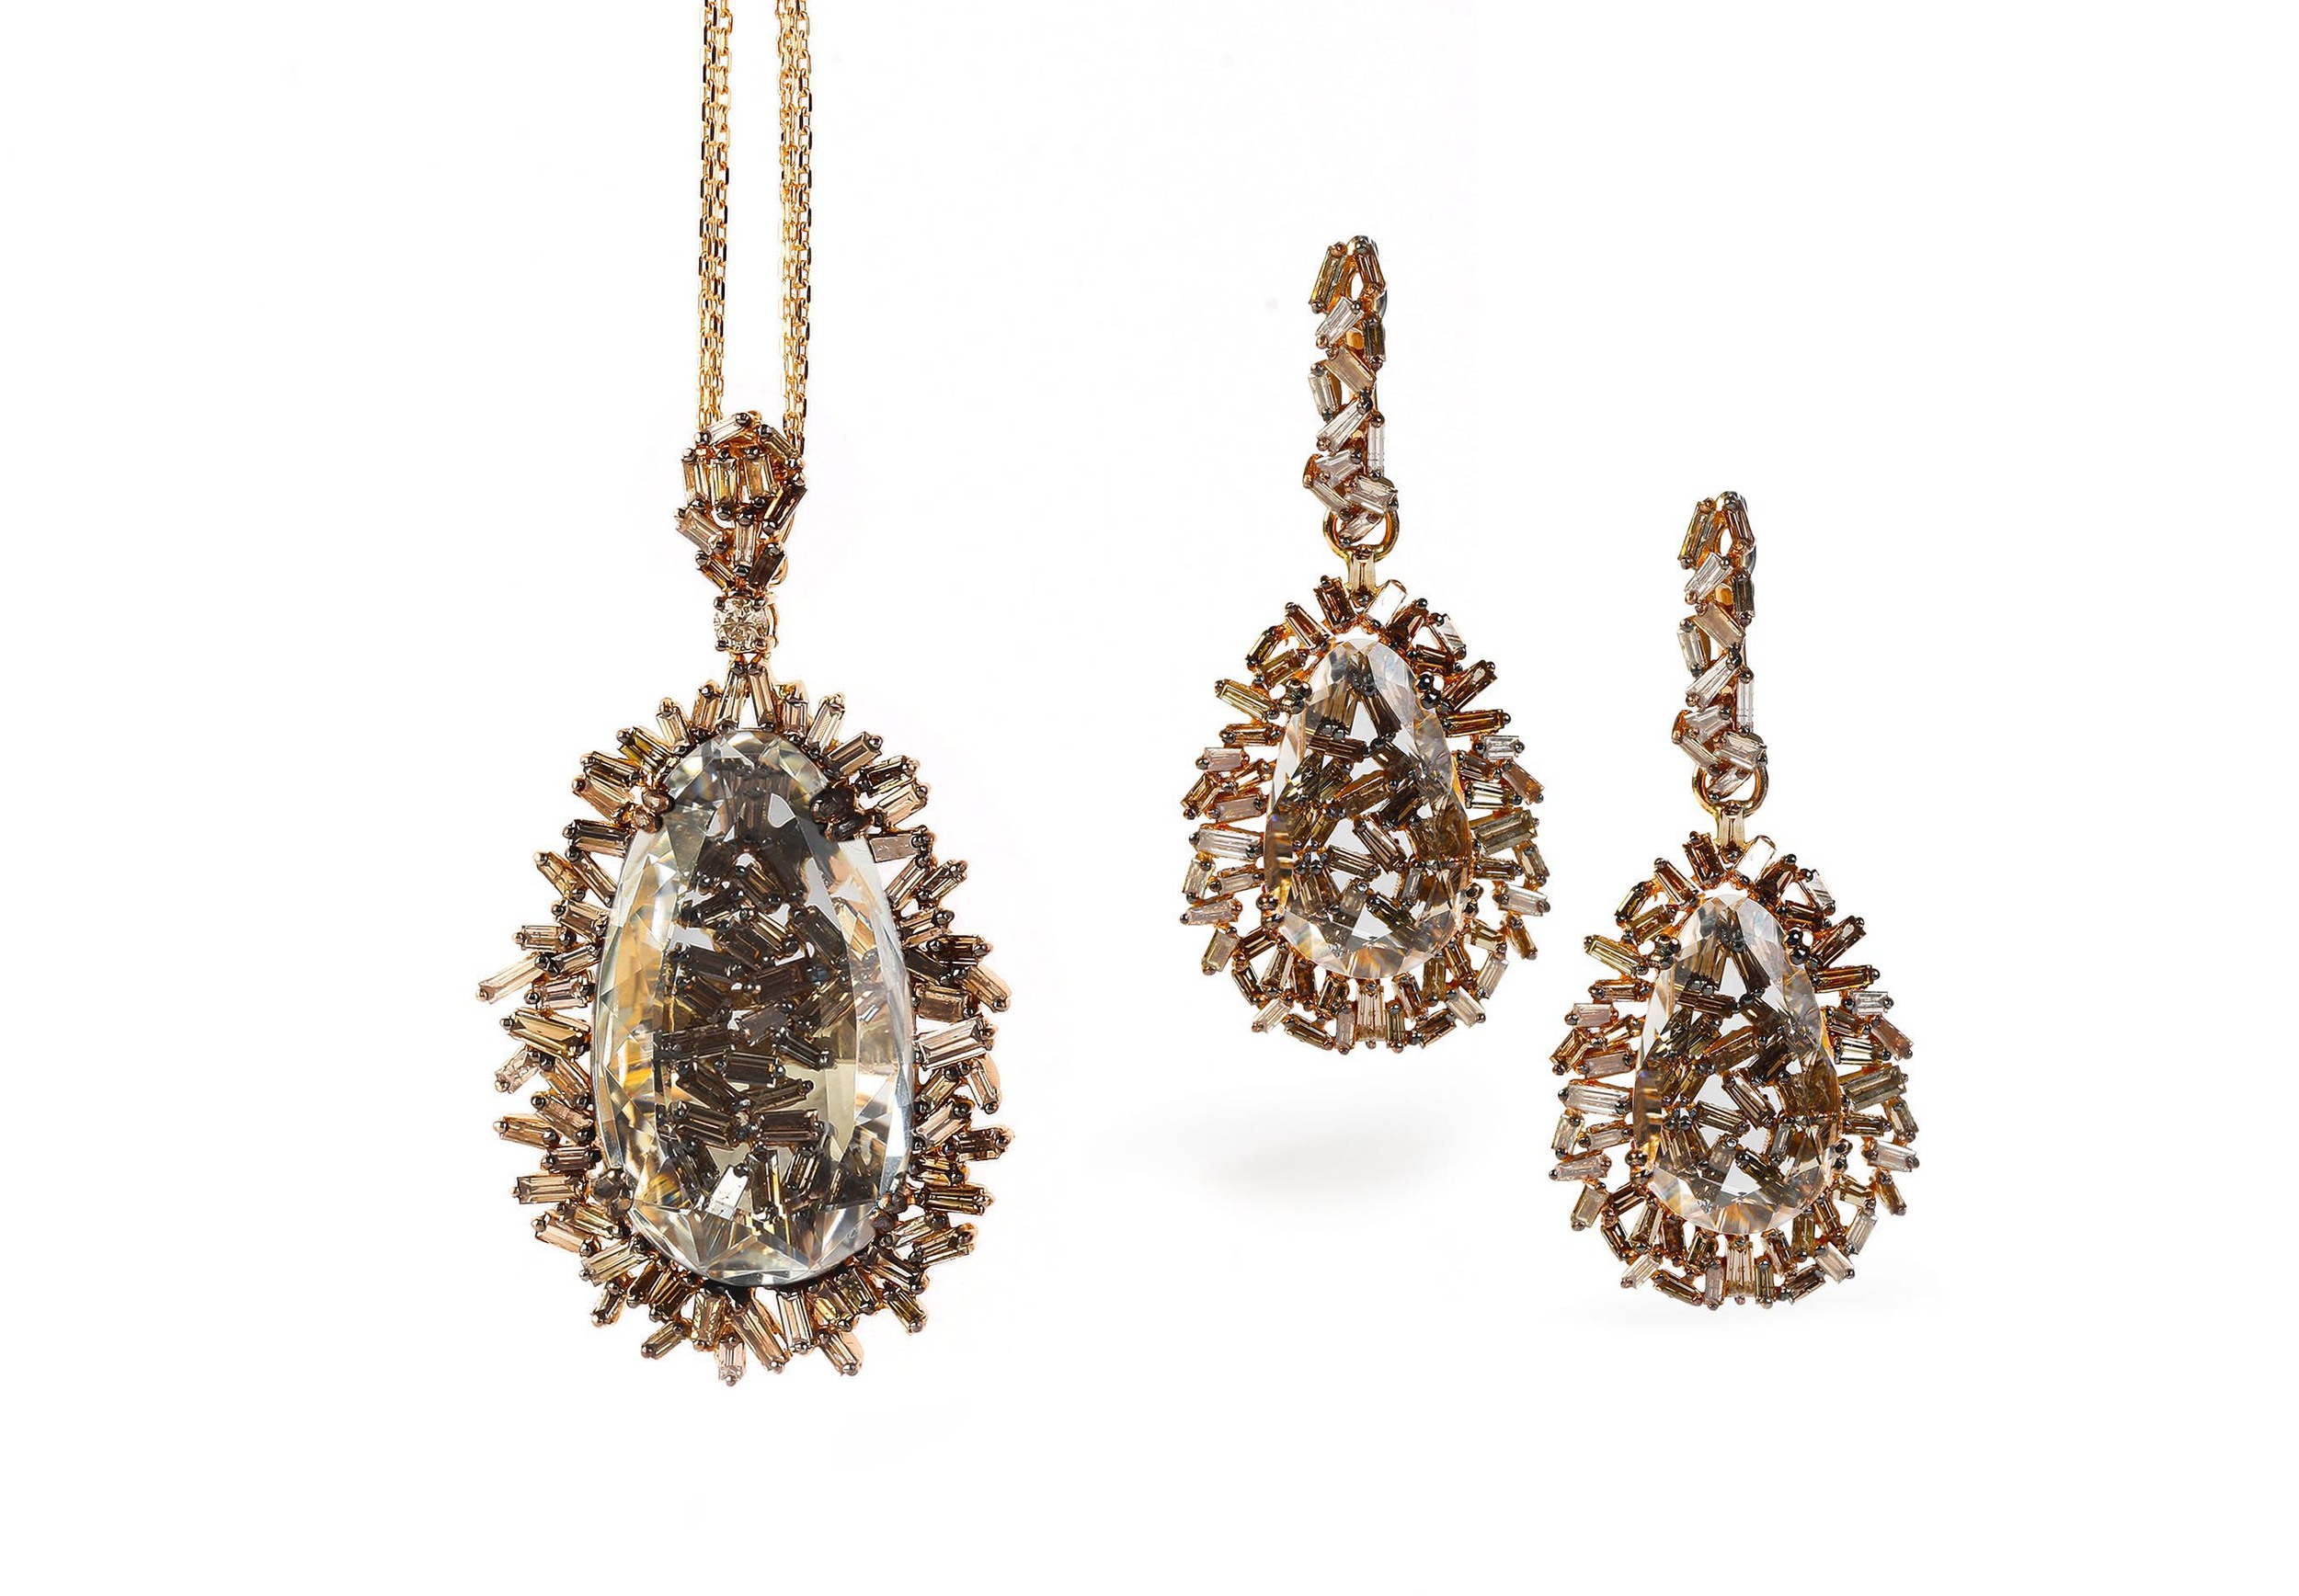 18k gold earrings and matching necklace from the Vitrine Fireworks collection.